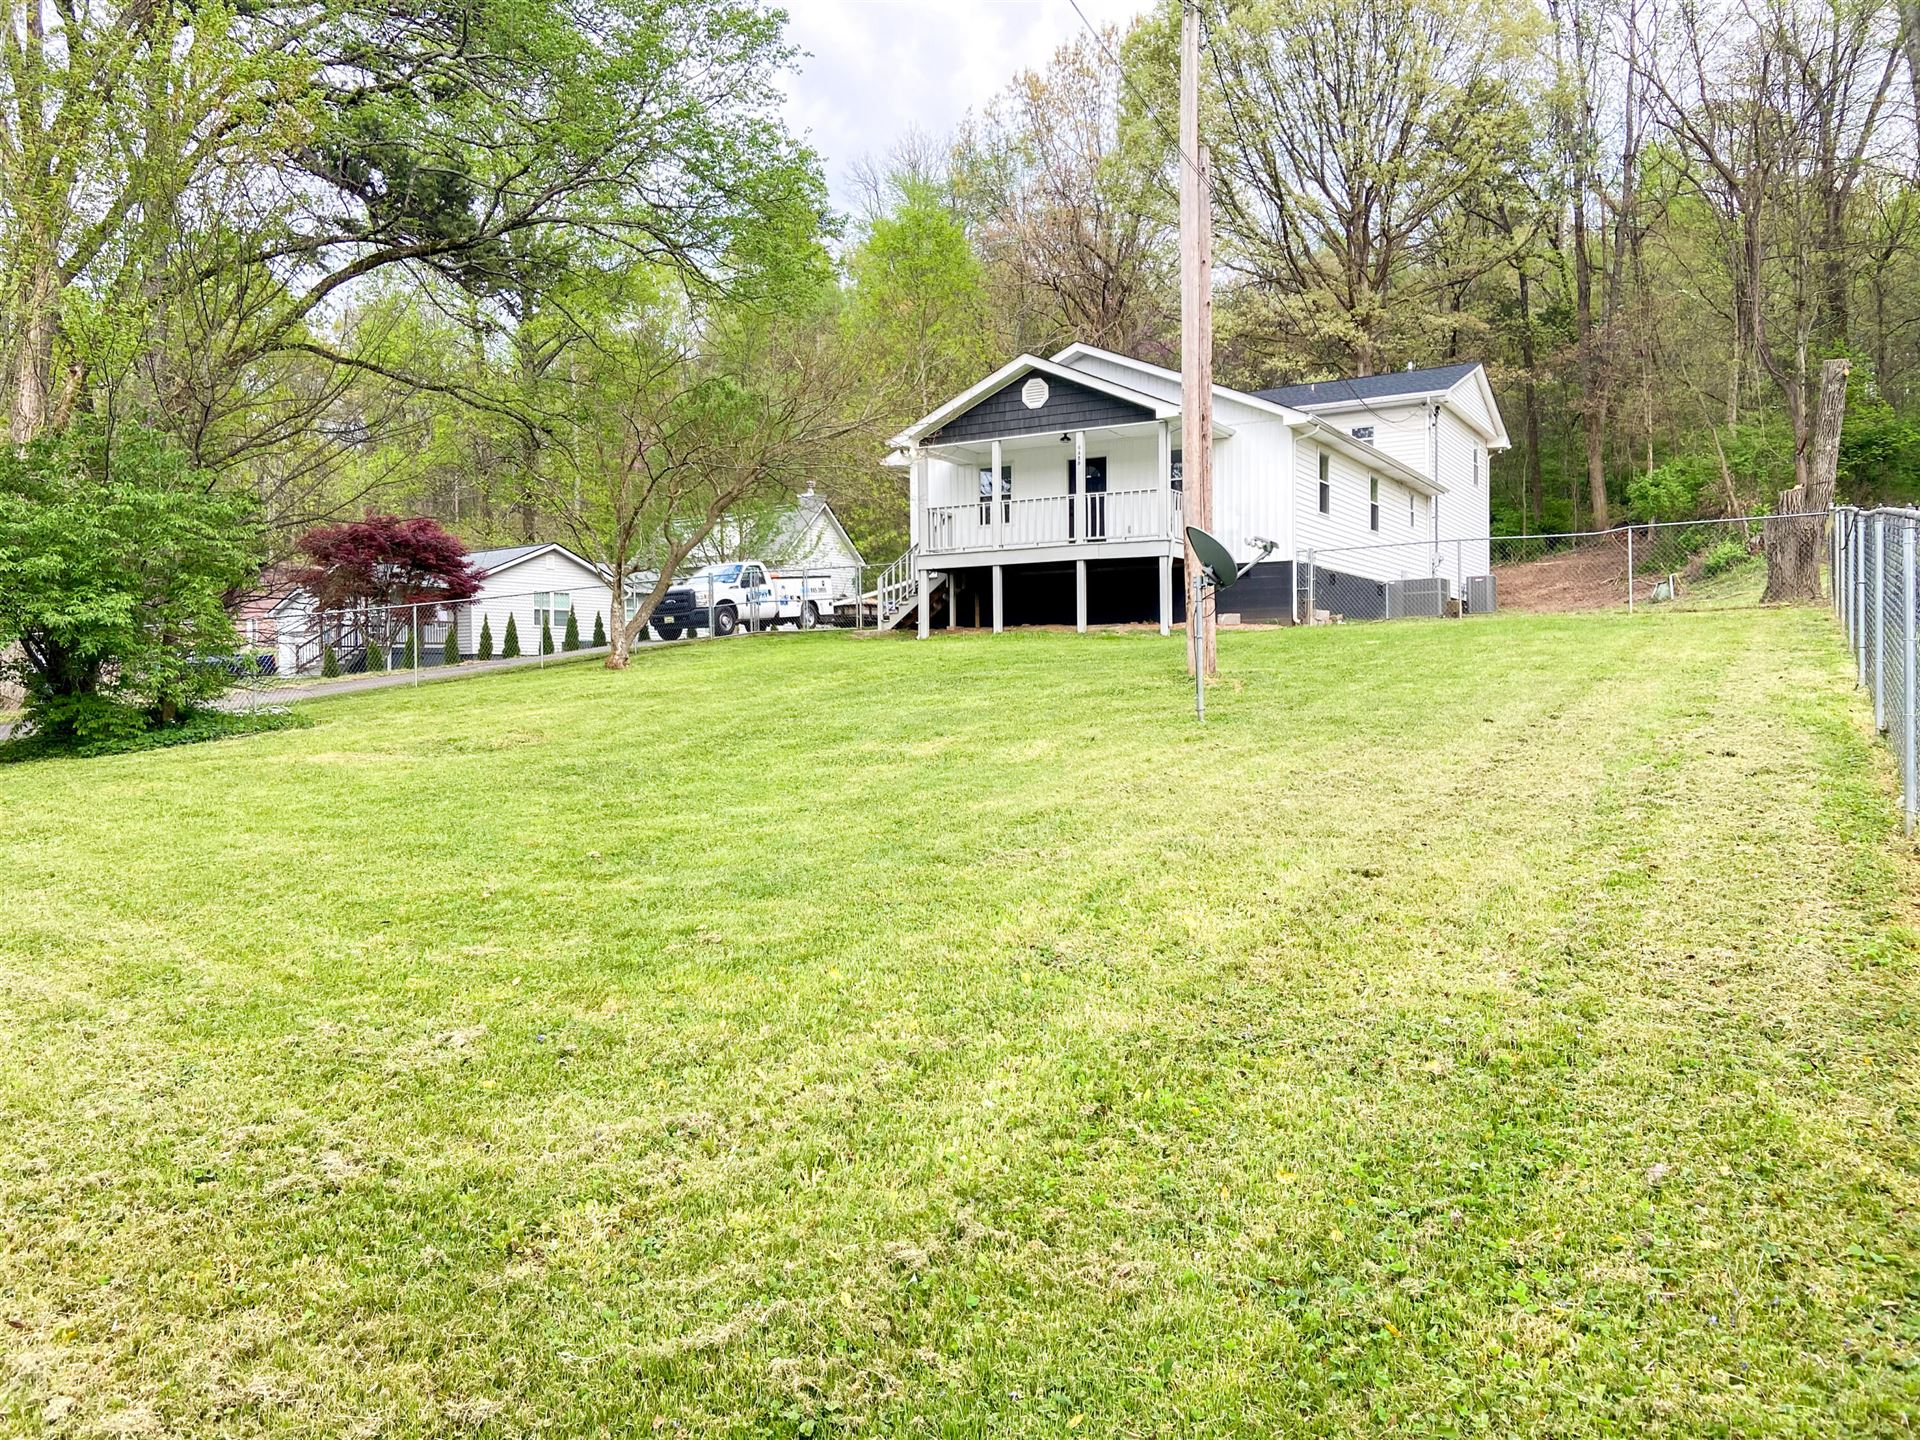 Photo of 6429 Keck Rd, Knoxville, TN 37912 (MLS # 1149088)